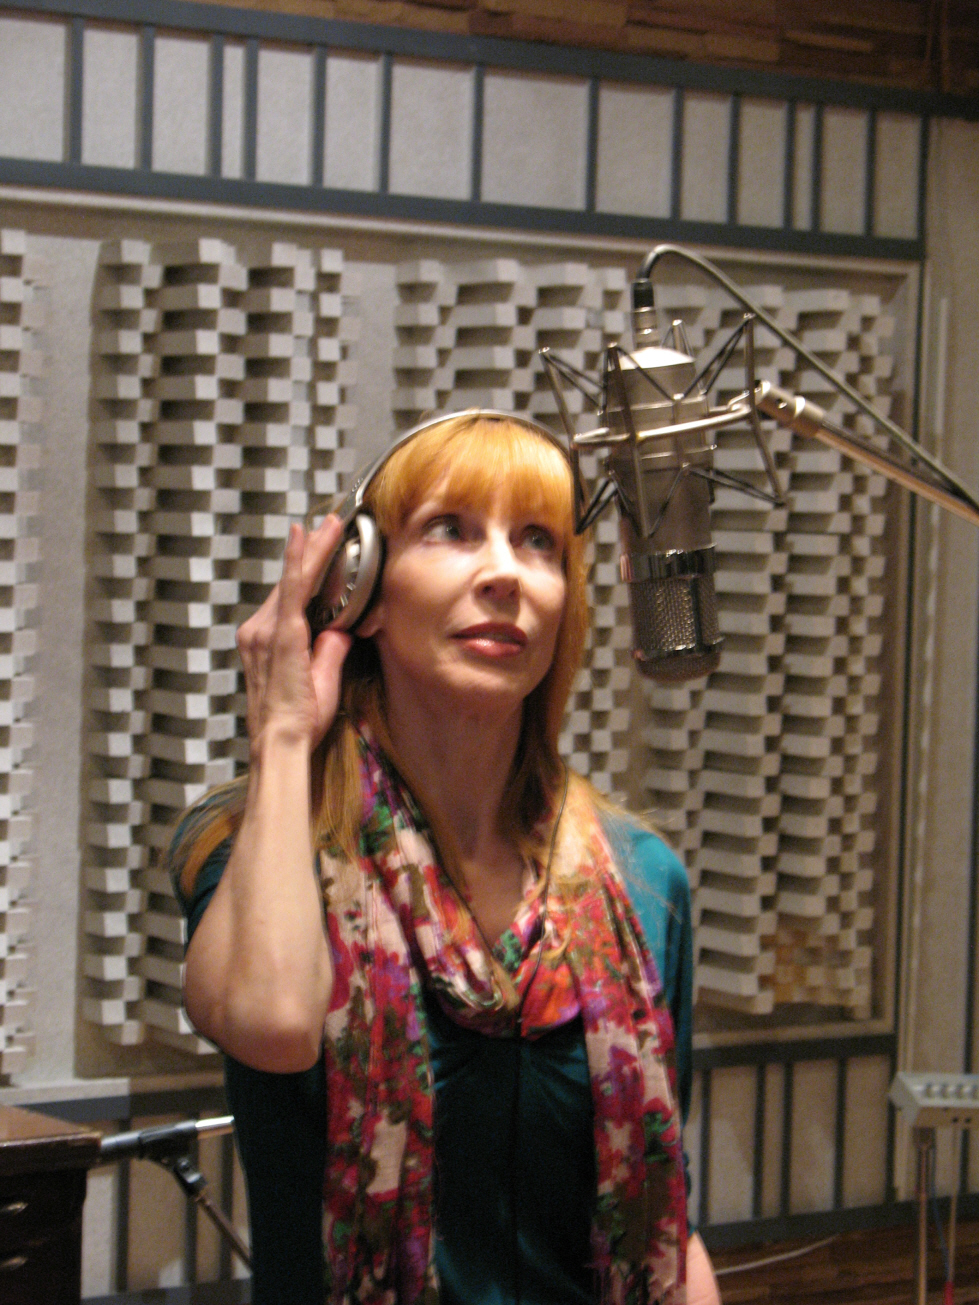 Laura at the mic for